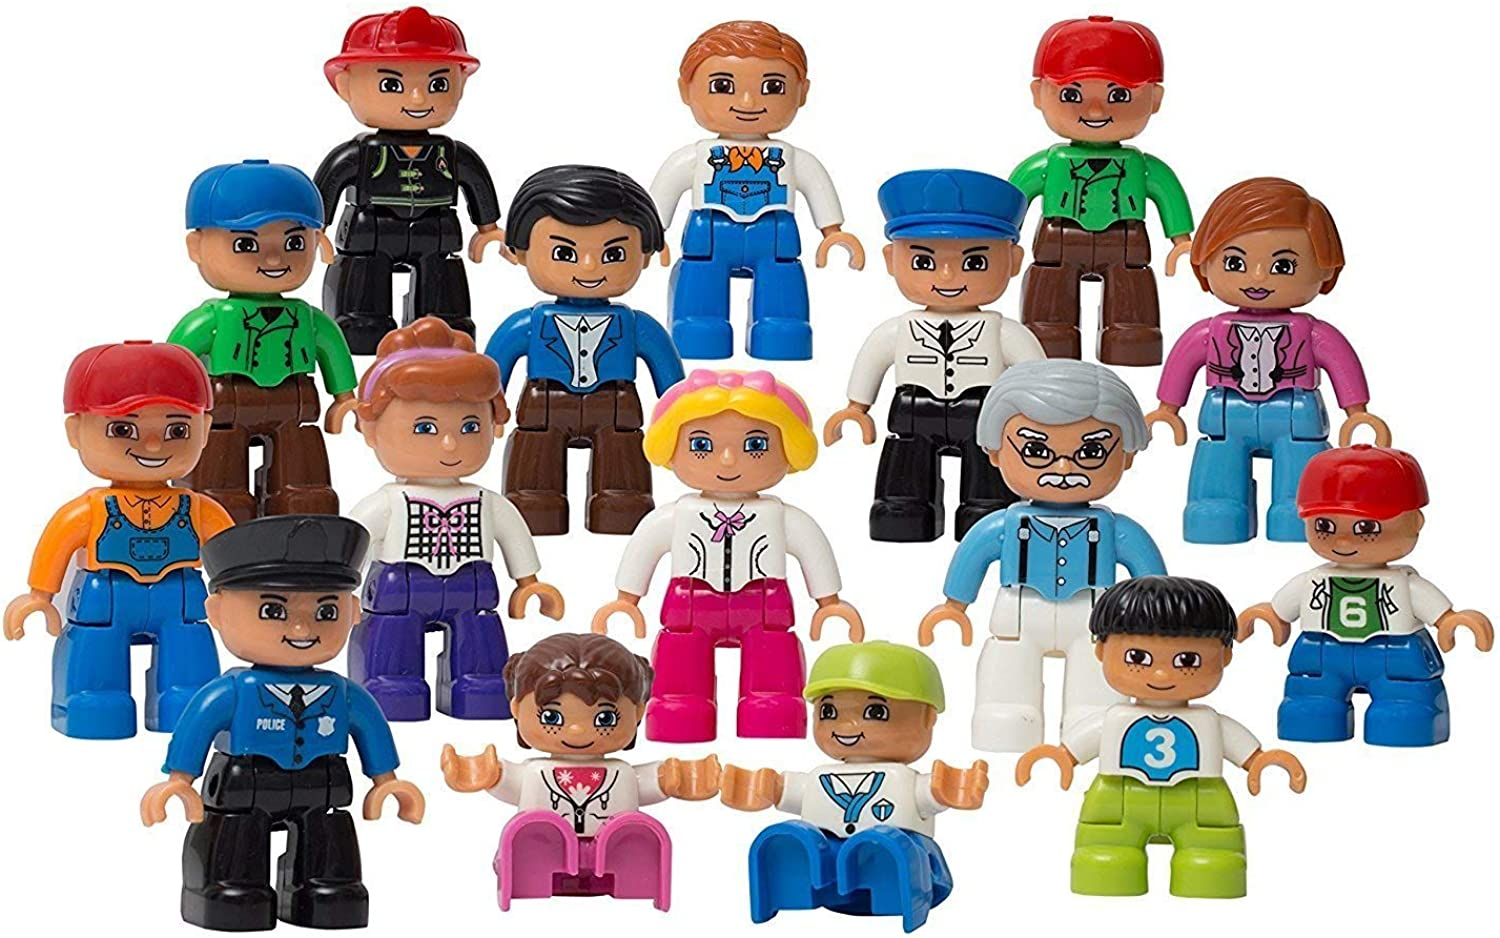 Play Build Community Figures Set – 16 Pieces – Bulk Starter Kit Includes Police Man, Farmer, Fire Fighter, Conductor, Mom, Dad, Grandpa, Kids & More – Compatible With Lego Duplo Building Blocks